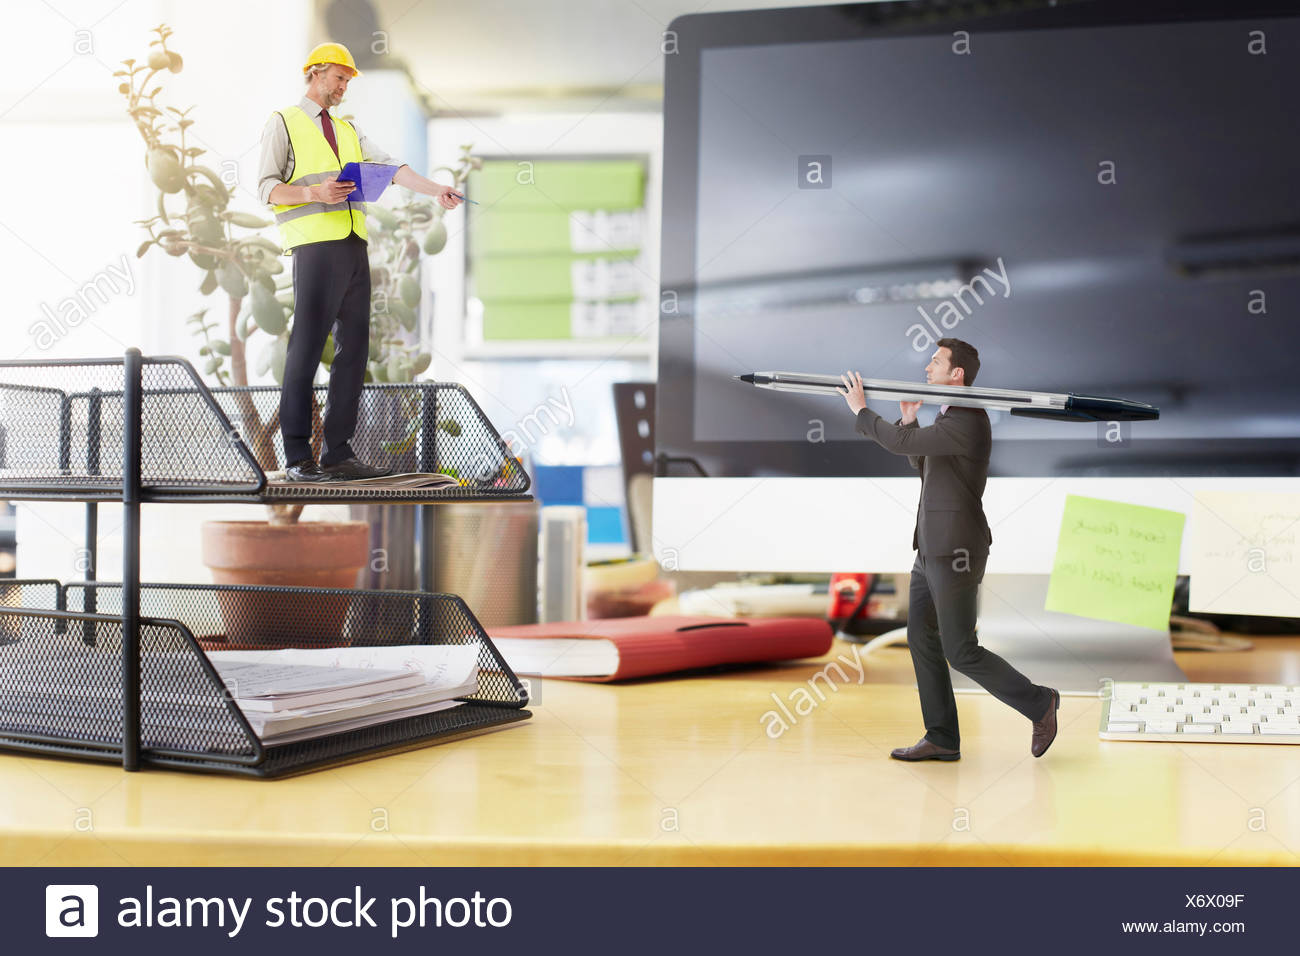 Mature foreman directing businessman carrying large pen on oversized desk - Stock Image